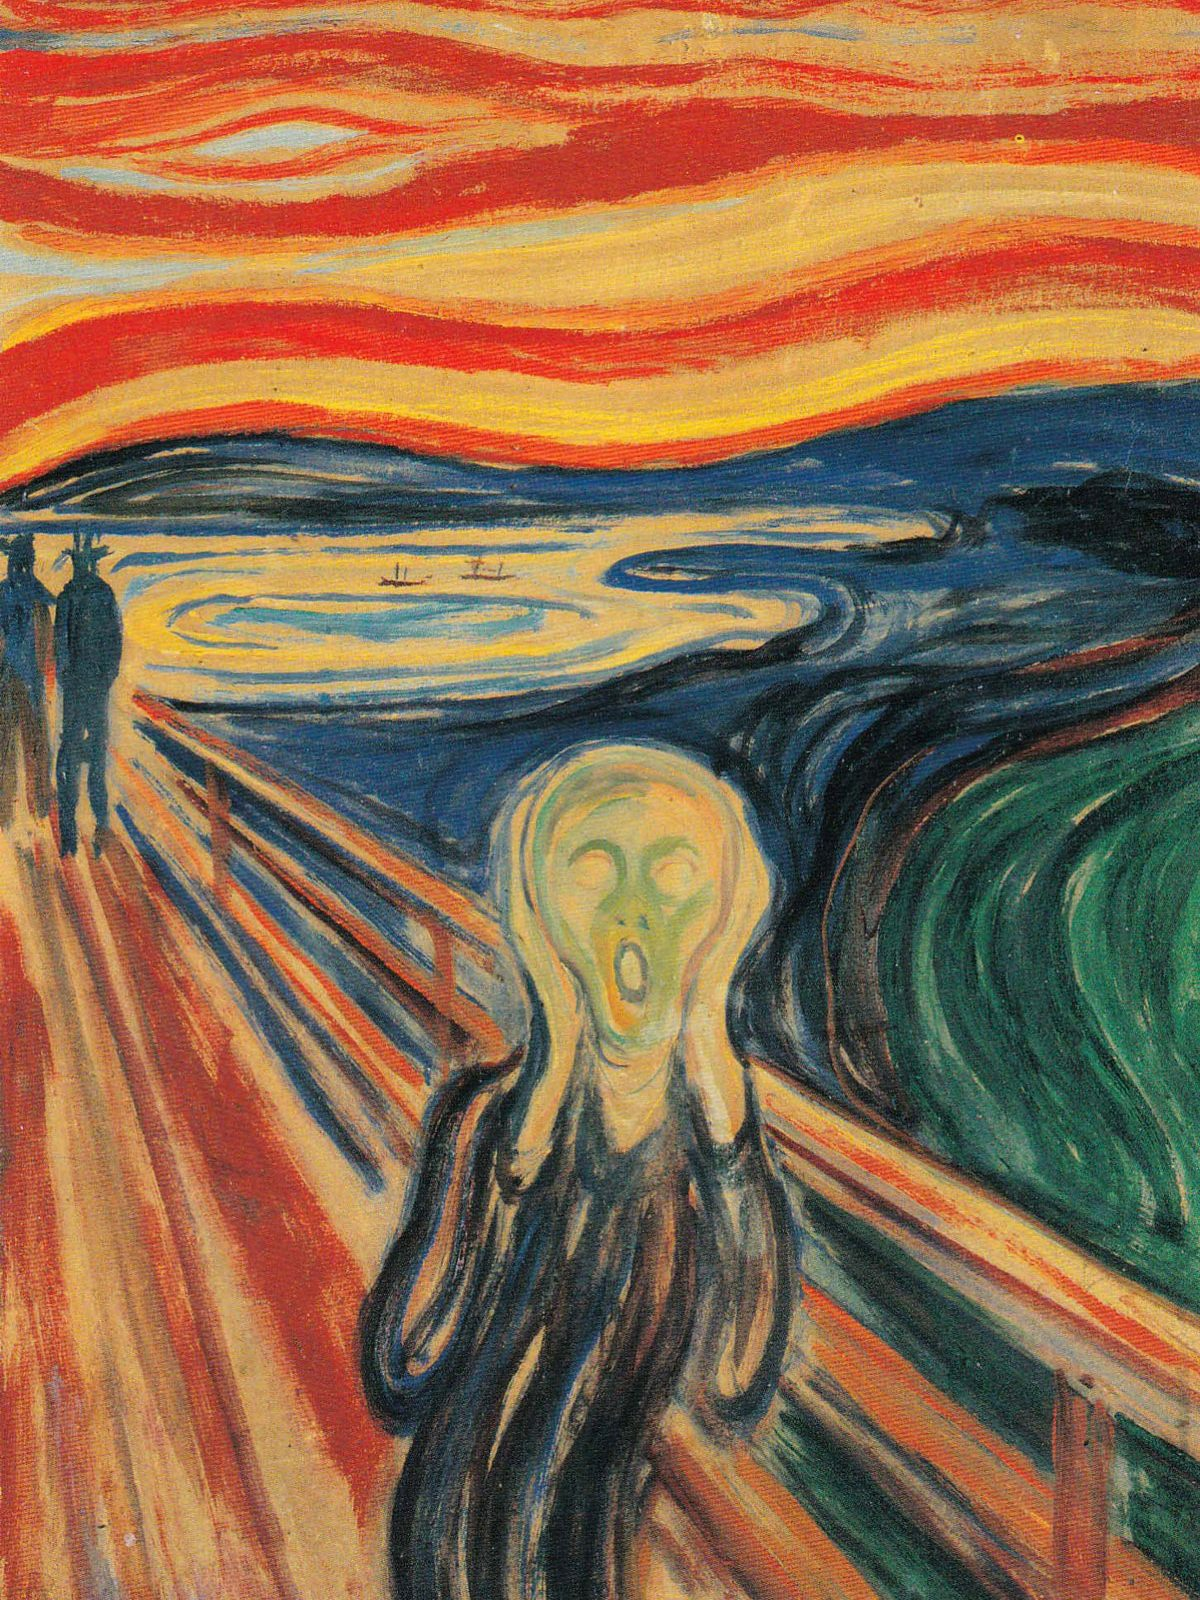 Postcard of 'The Scream'